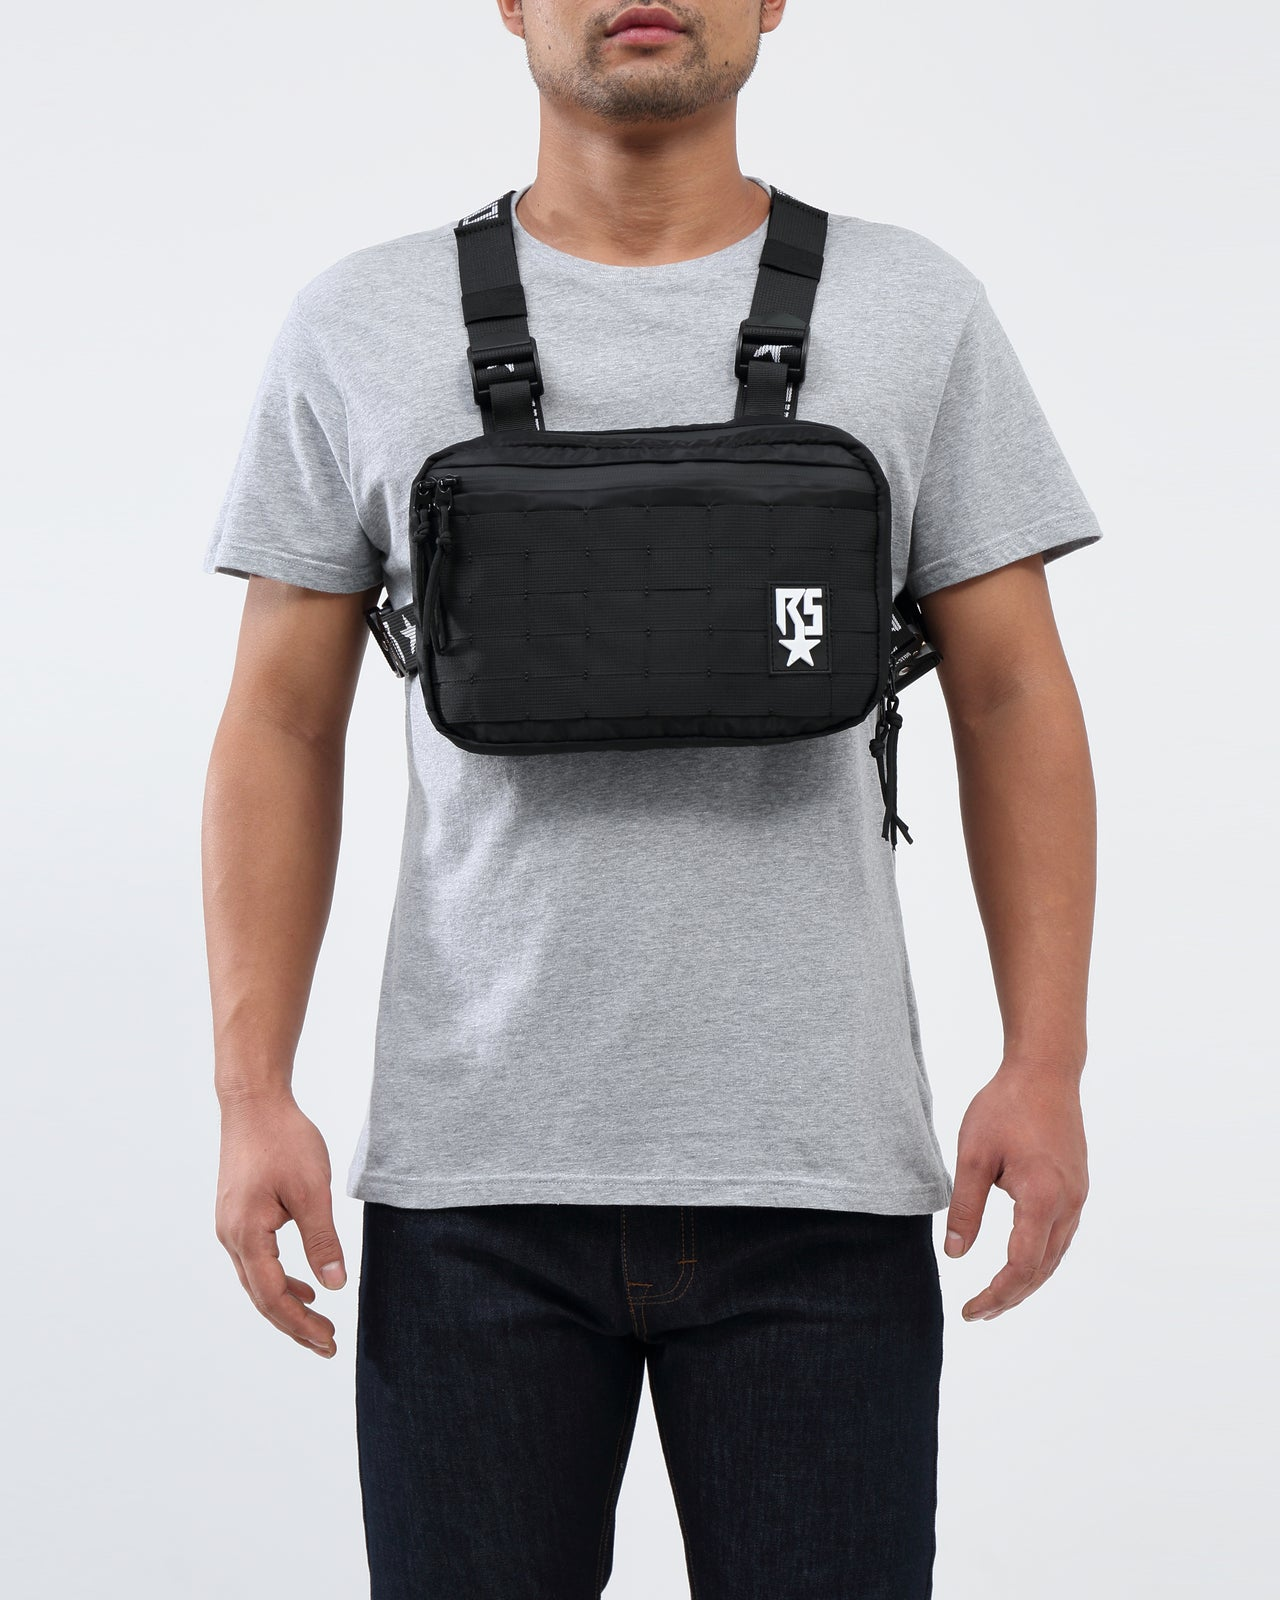 RS LOGO CHEST RIG BAG - Color: Black